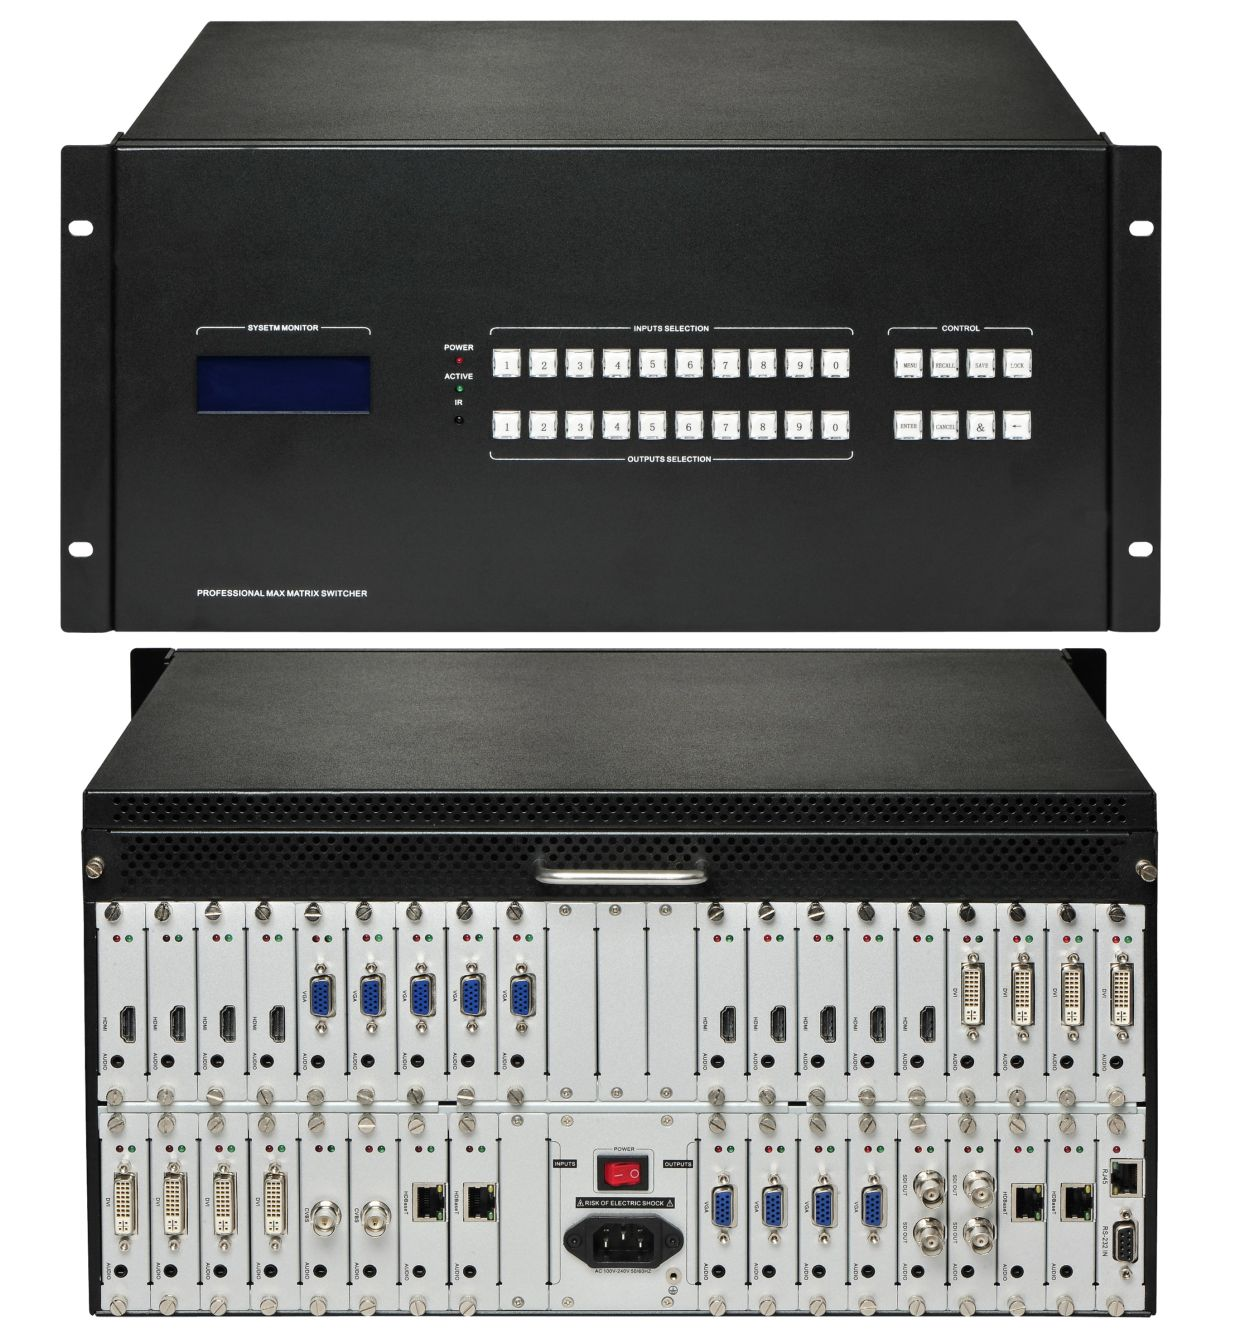 WolfPack Modular HDMI Matrix with Video Wall Integration